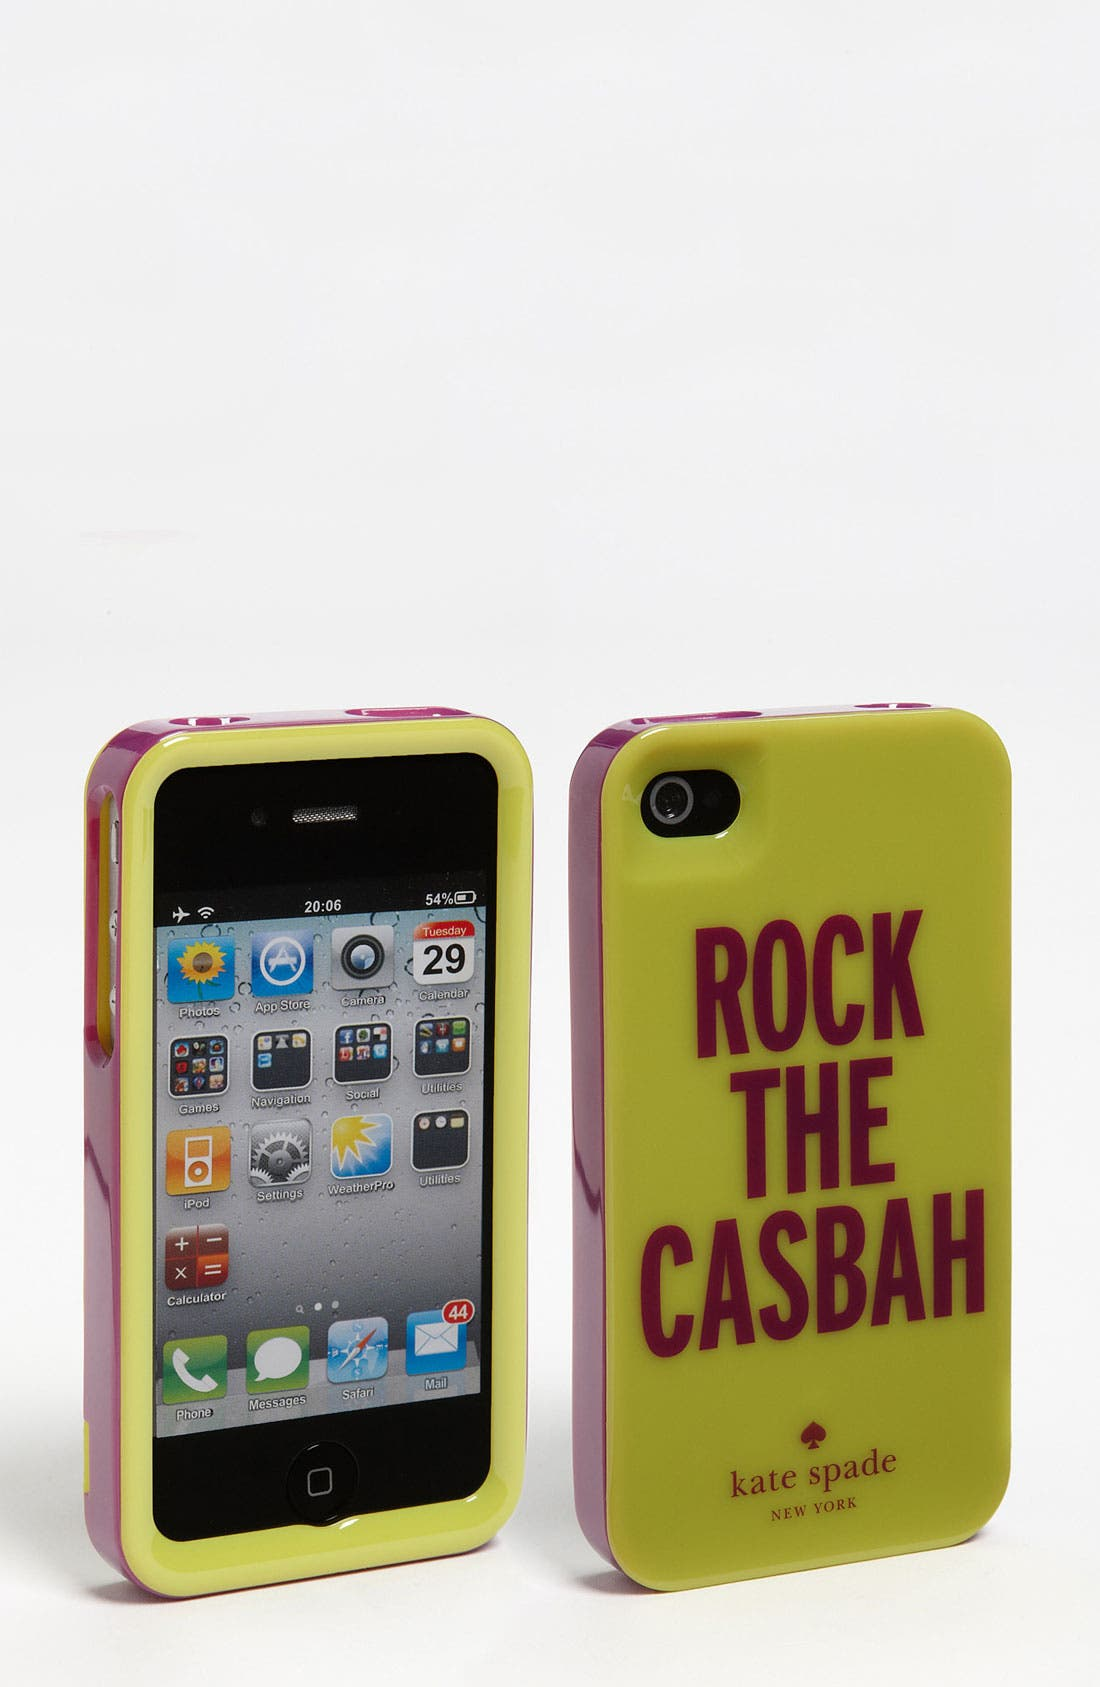 Alternate Image 1 Selected - kate spade new york 'rock the casbah' iPhone 4 & 4S case